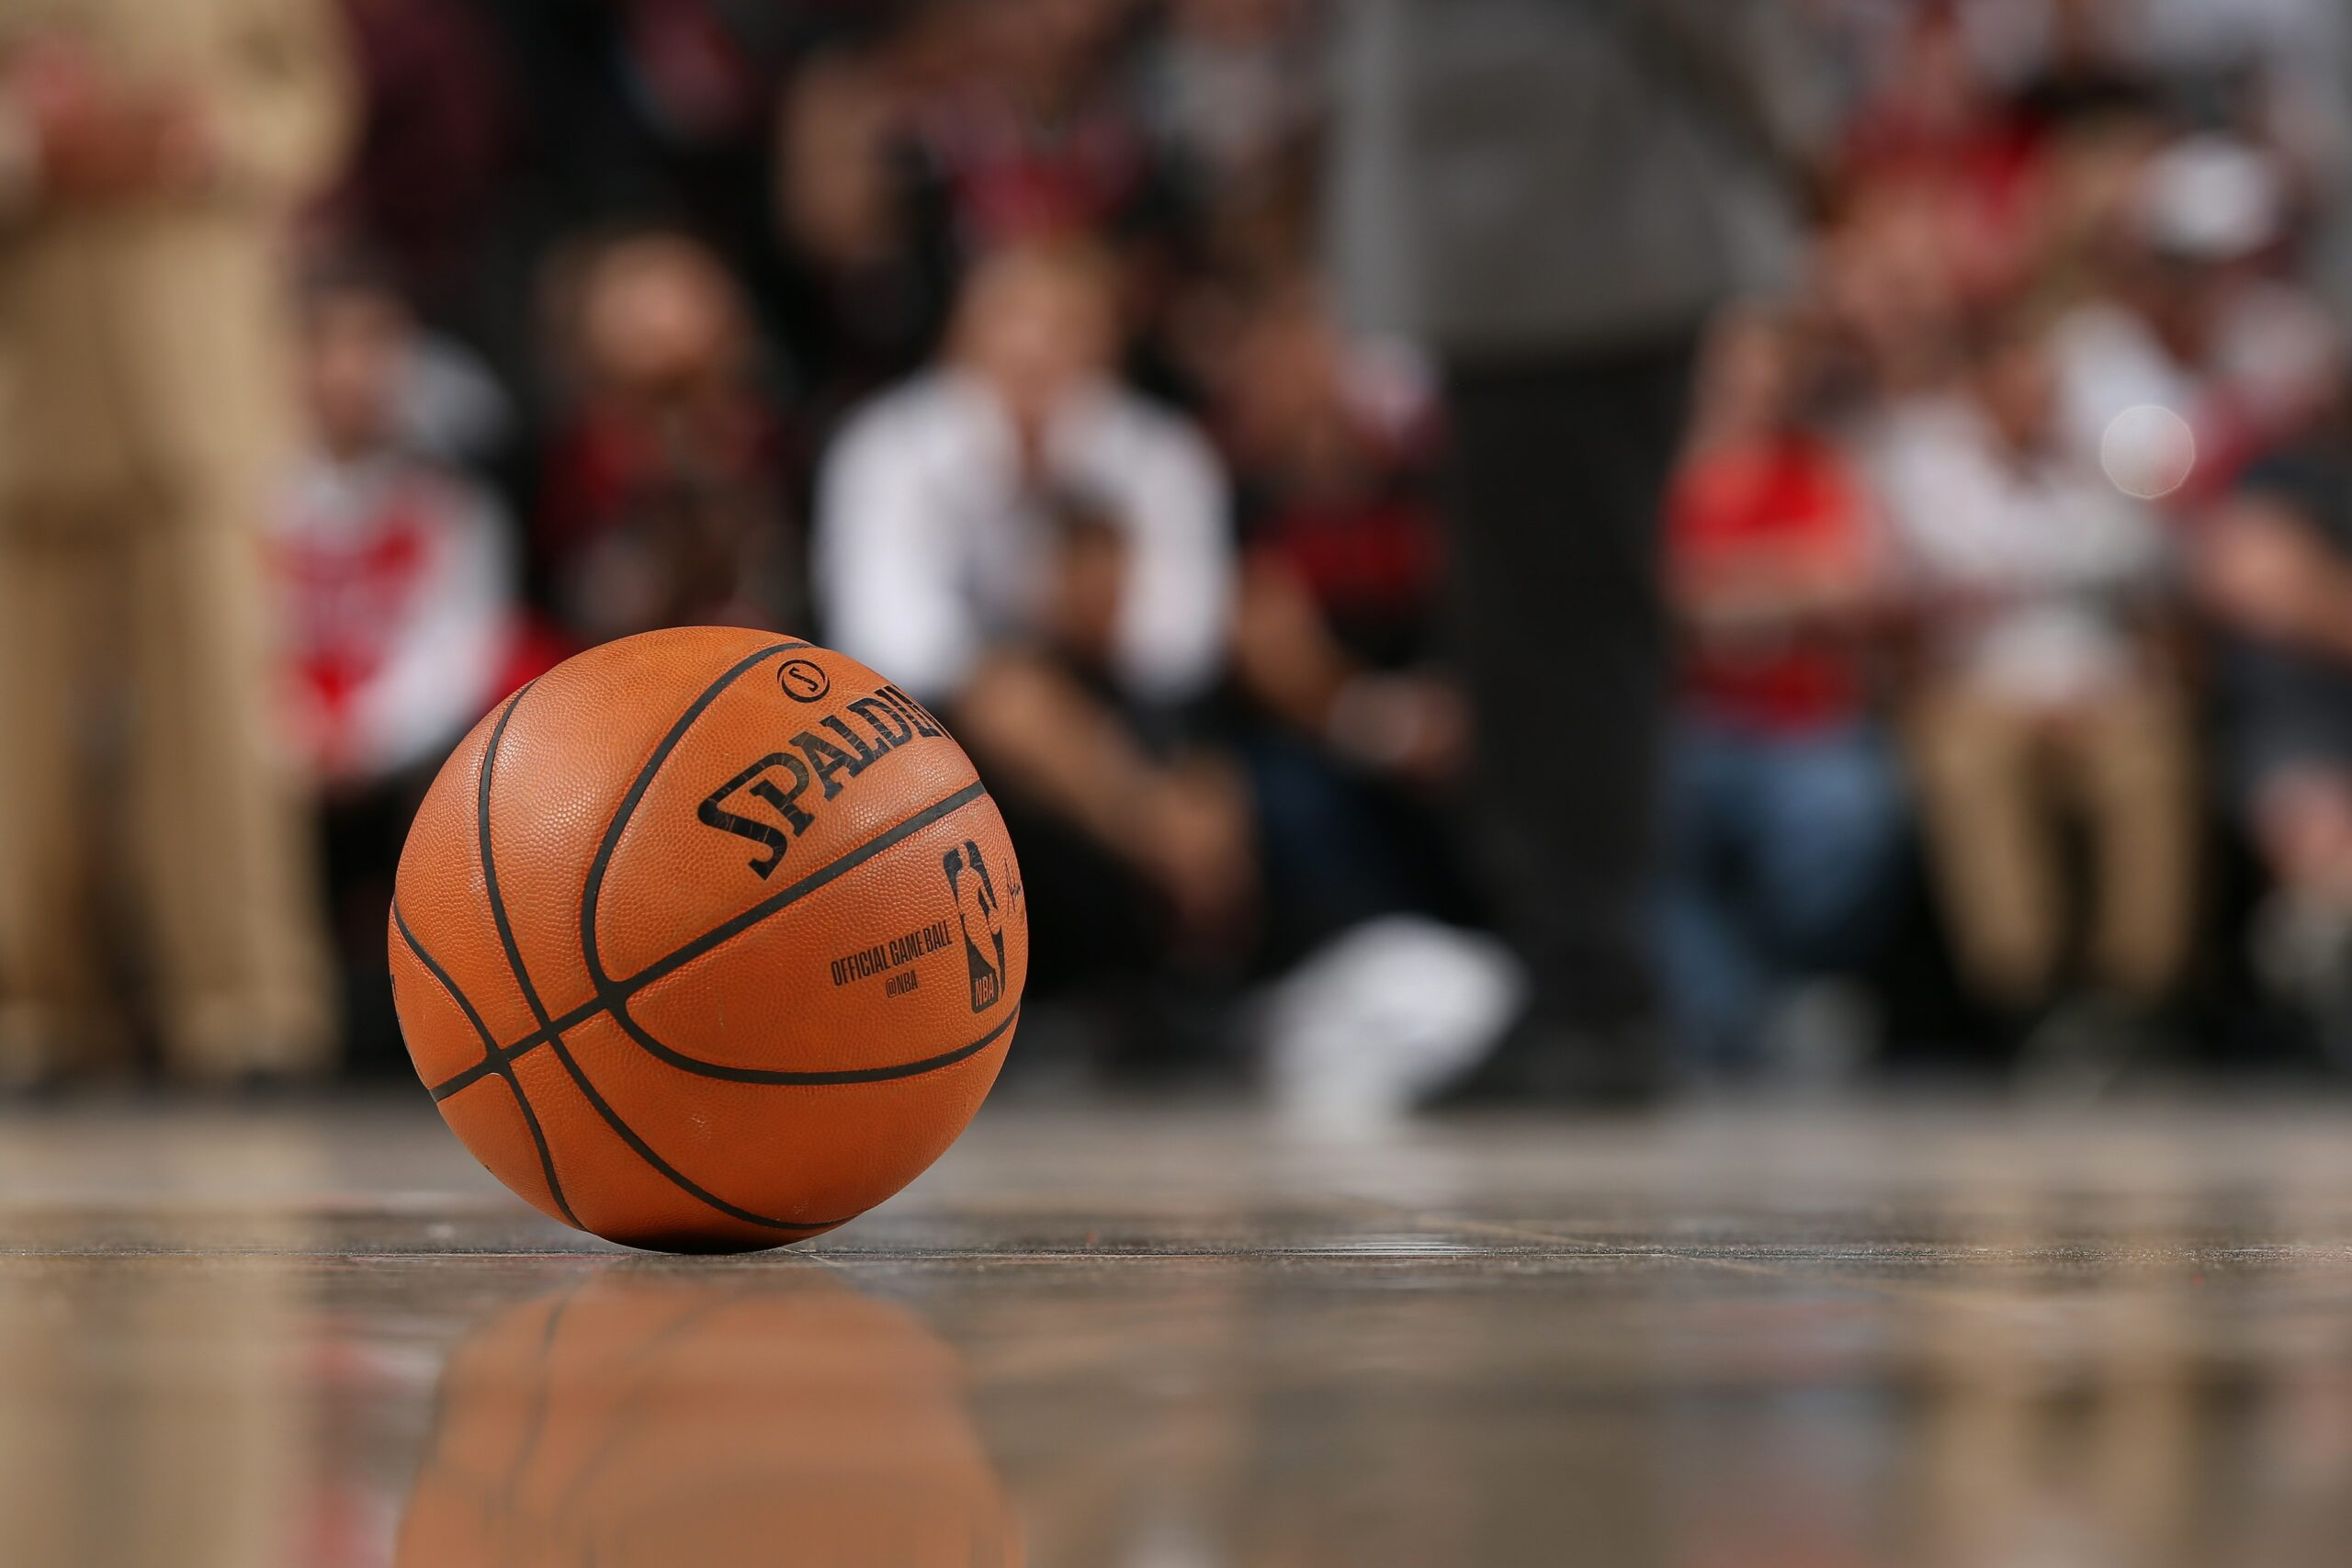 NBA announces formation of NBA Africa; 5 former players are investors